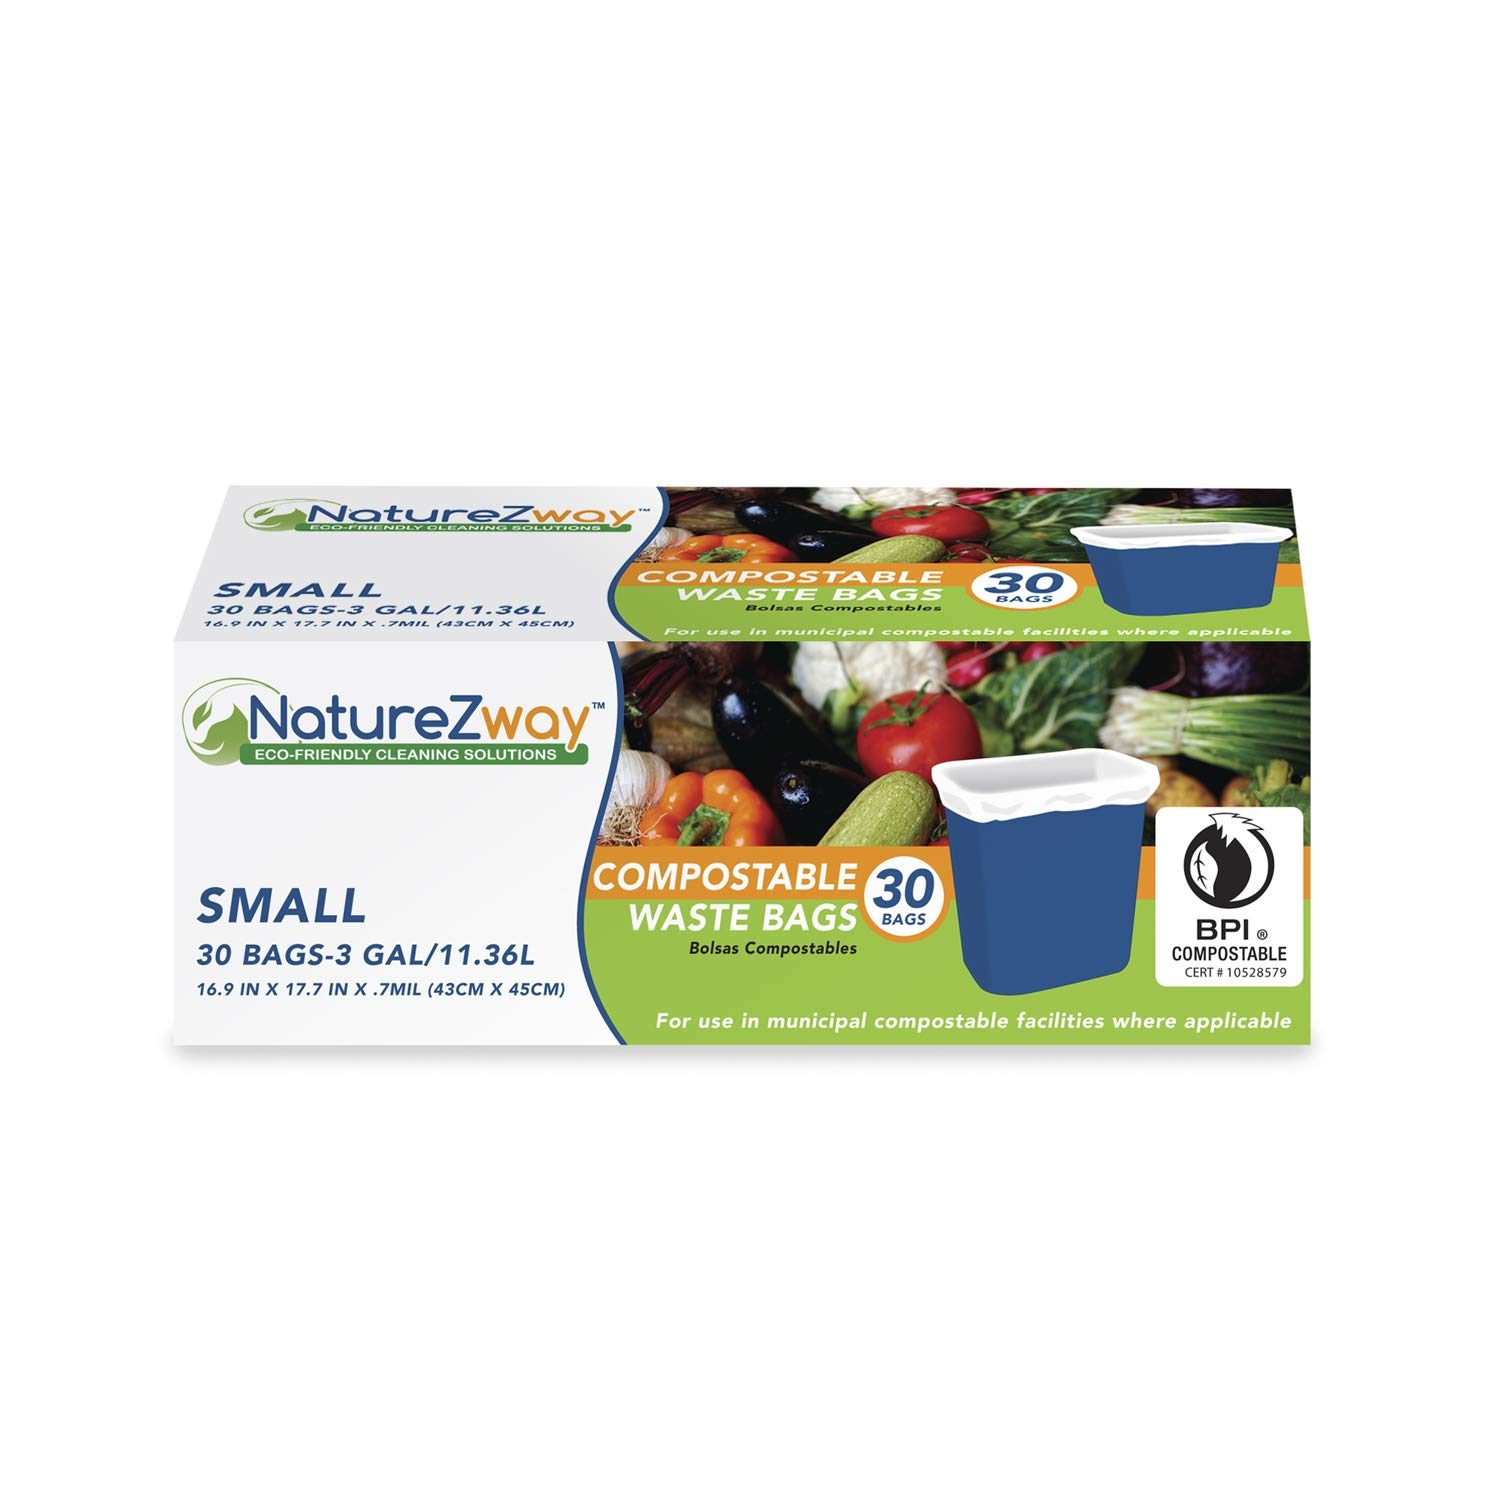 NatureZway Small 3 gal Waste Bags (30 ct)